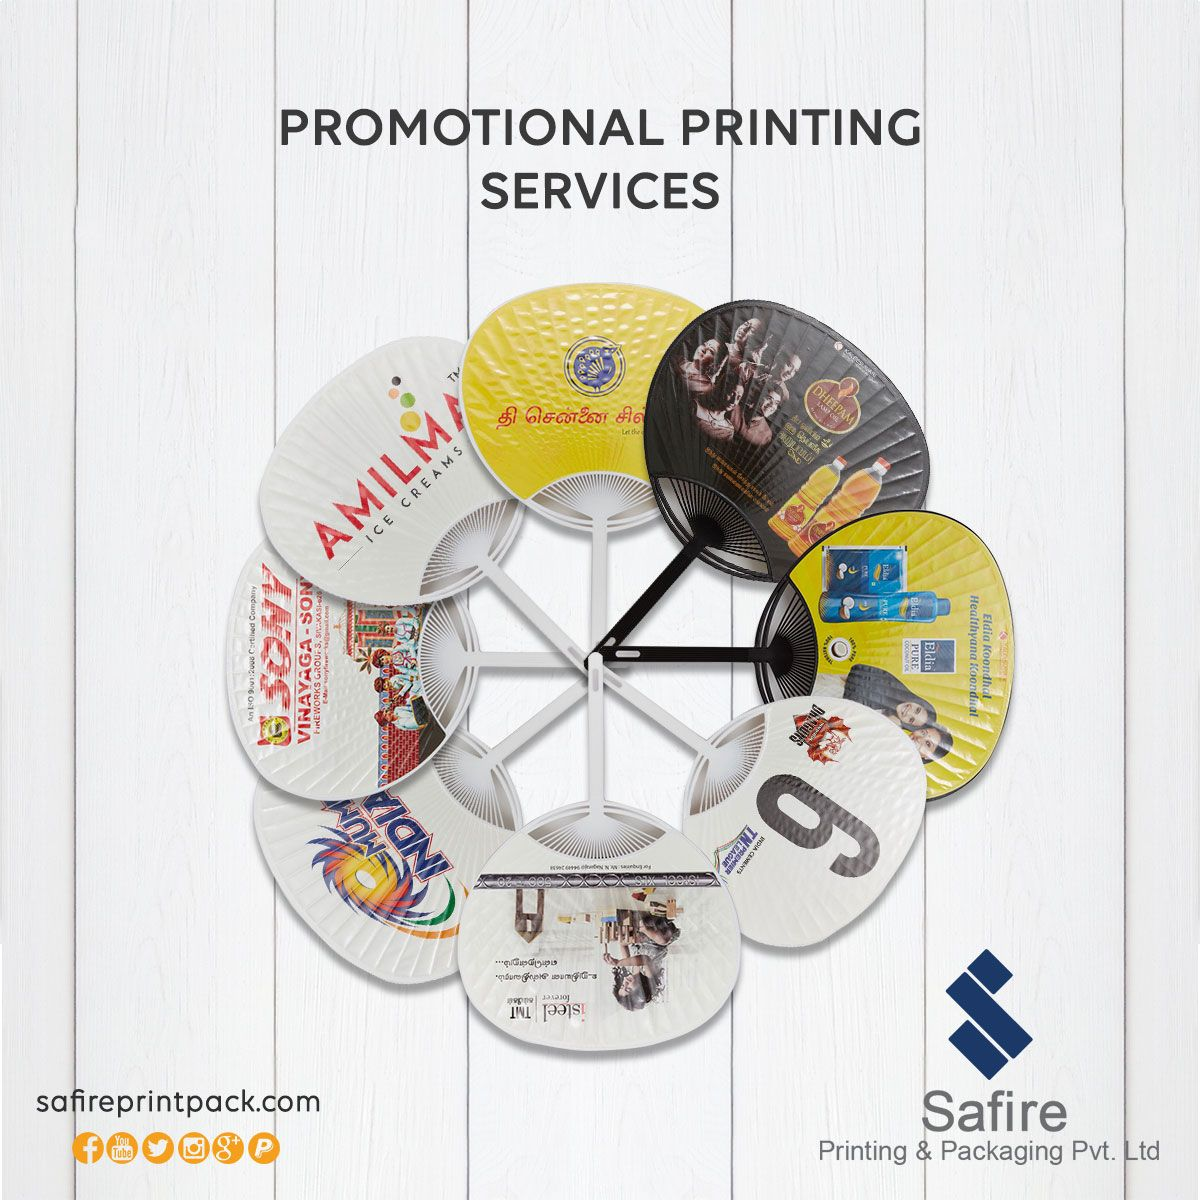 printing and packaging-Safire Print Pack